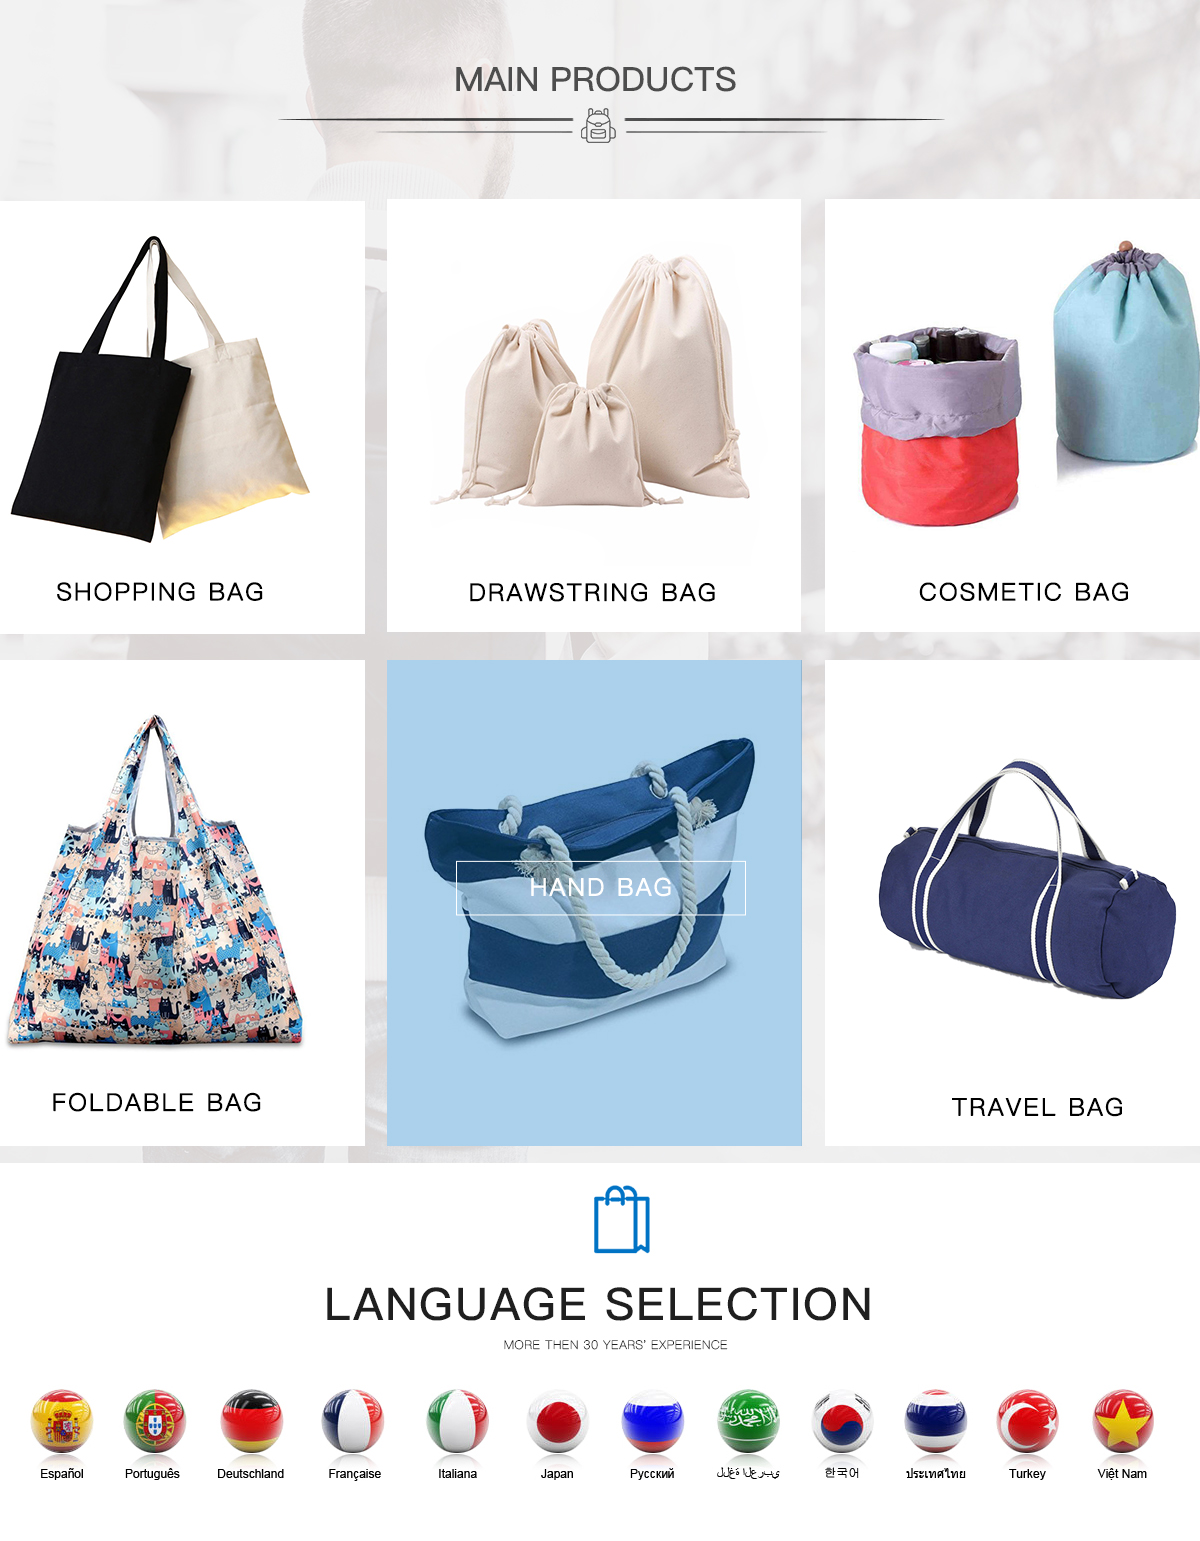 fe74c8171de8 Cangnan Qi Di Bag Co., Ltd. - Shopping Bag, Cosmetic Bag